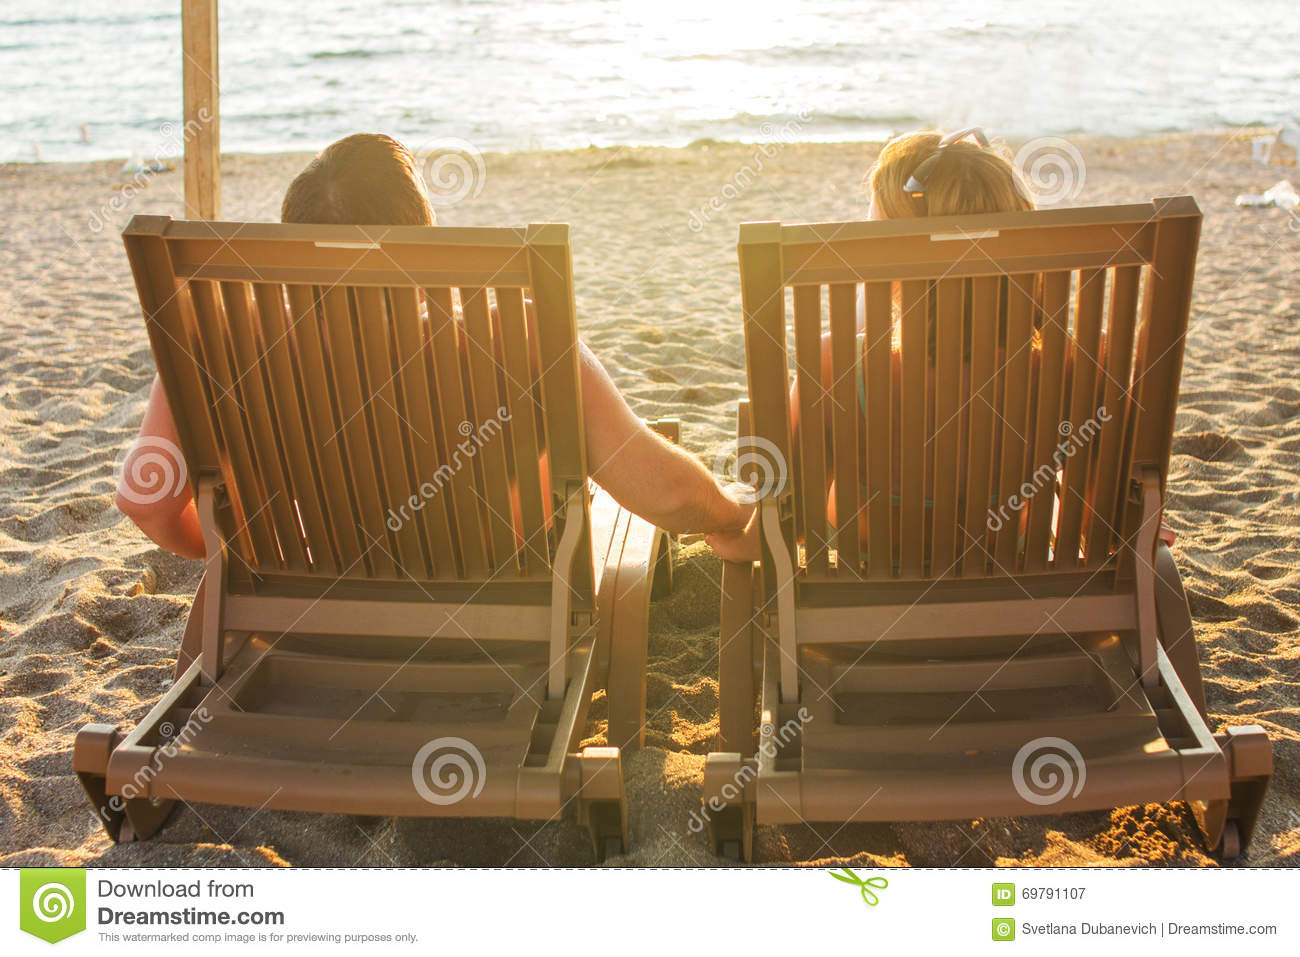 Couple Sitting On The Lounge Chairs Stock Image | CartoonDealer.com #69791107 & Couple Sitting On The Lounge Chairs Stock Image | CartoonDealer.com ...